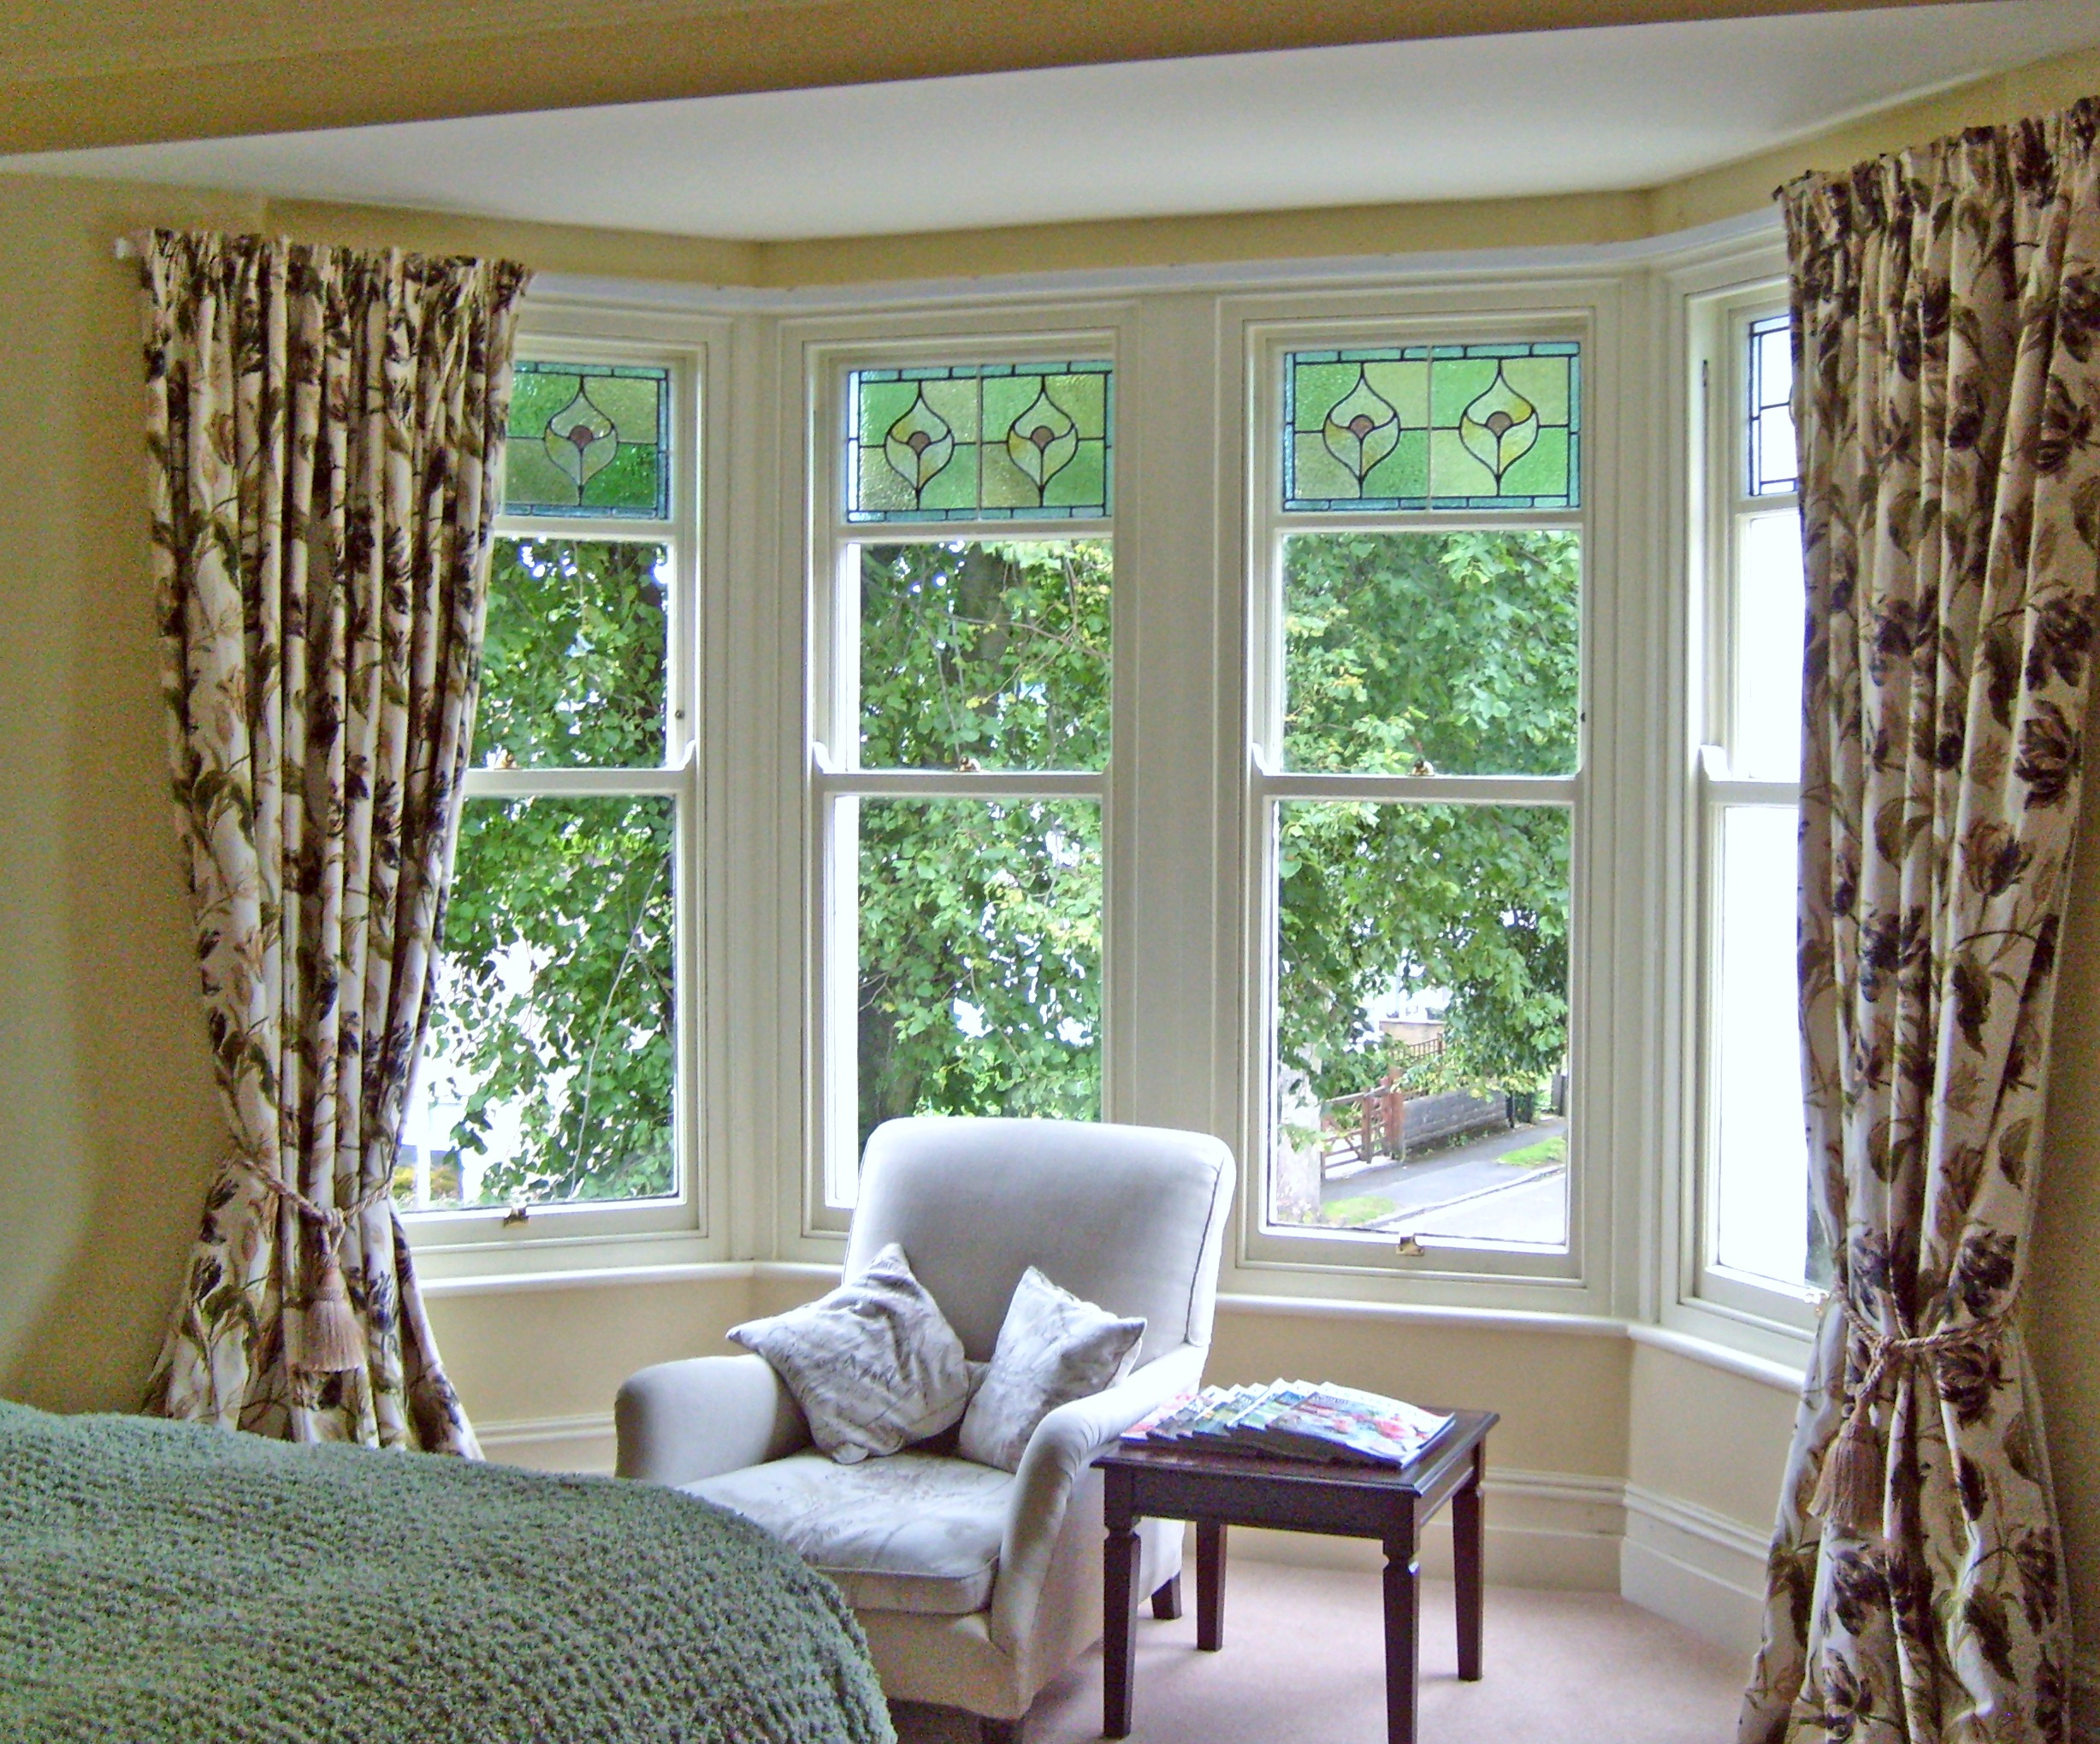 The Best Kind Of Window Shopping – Finding Attractive Windows Can Vastly Improve The Look And Comfort Of Your Home